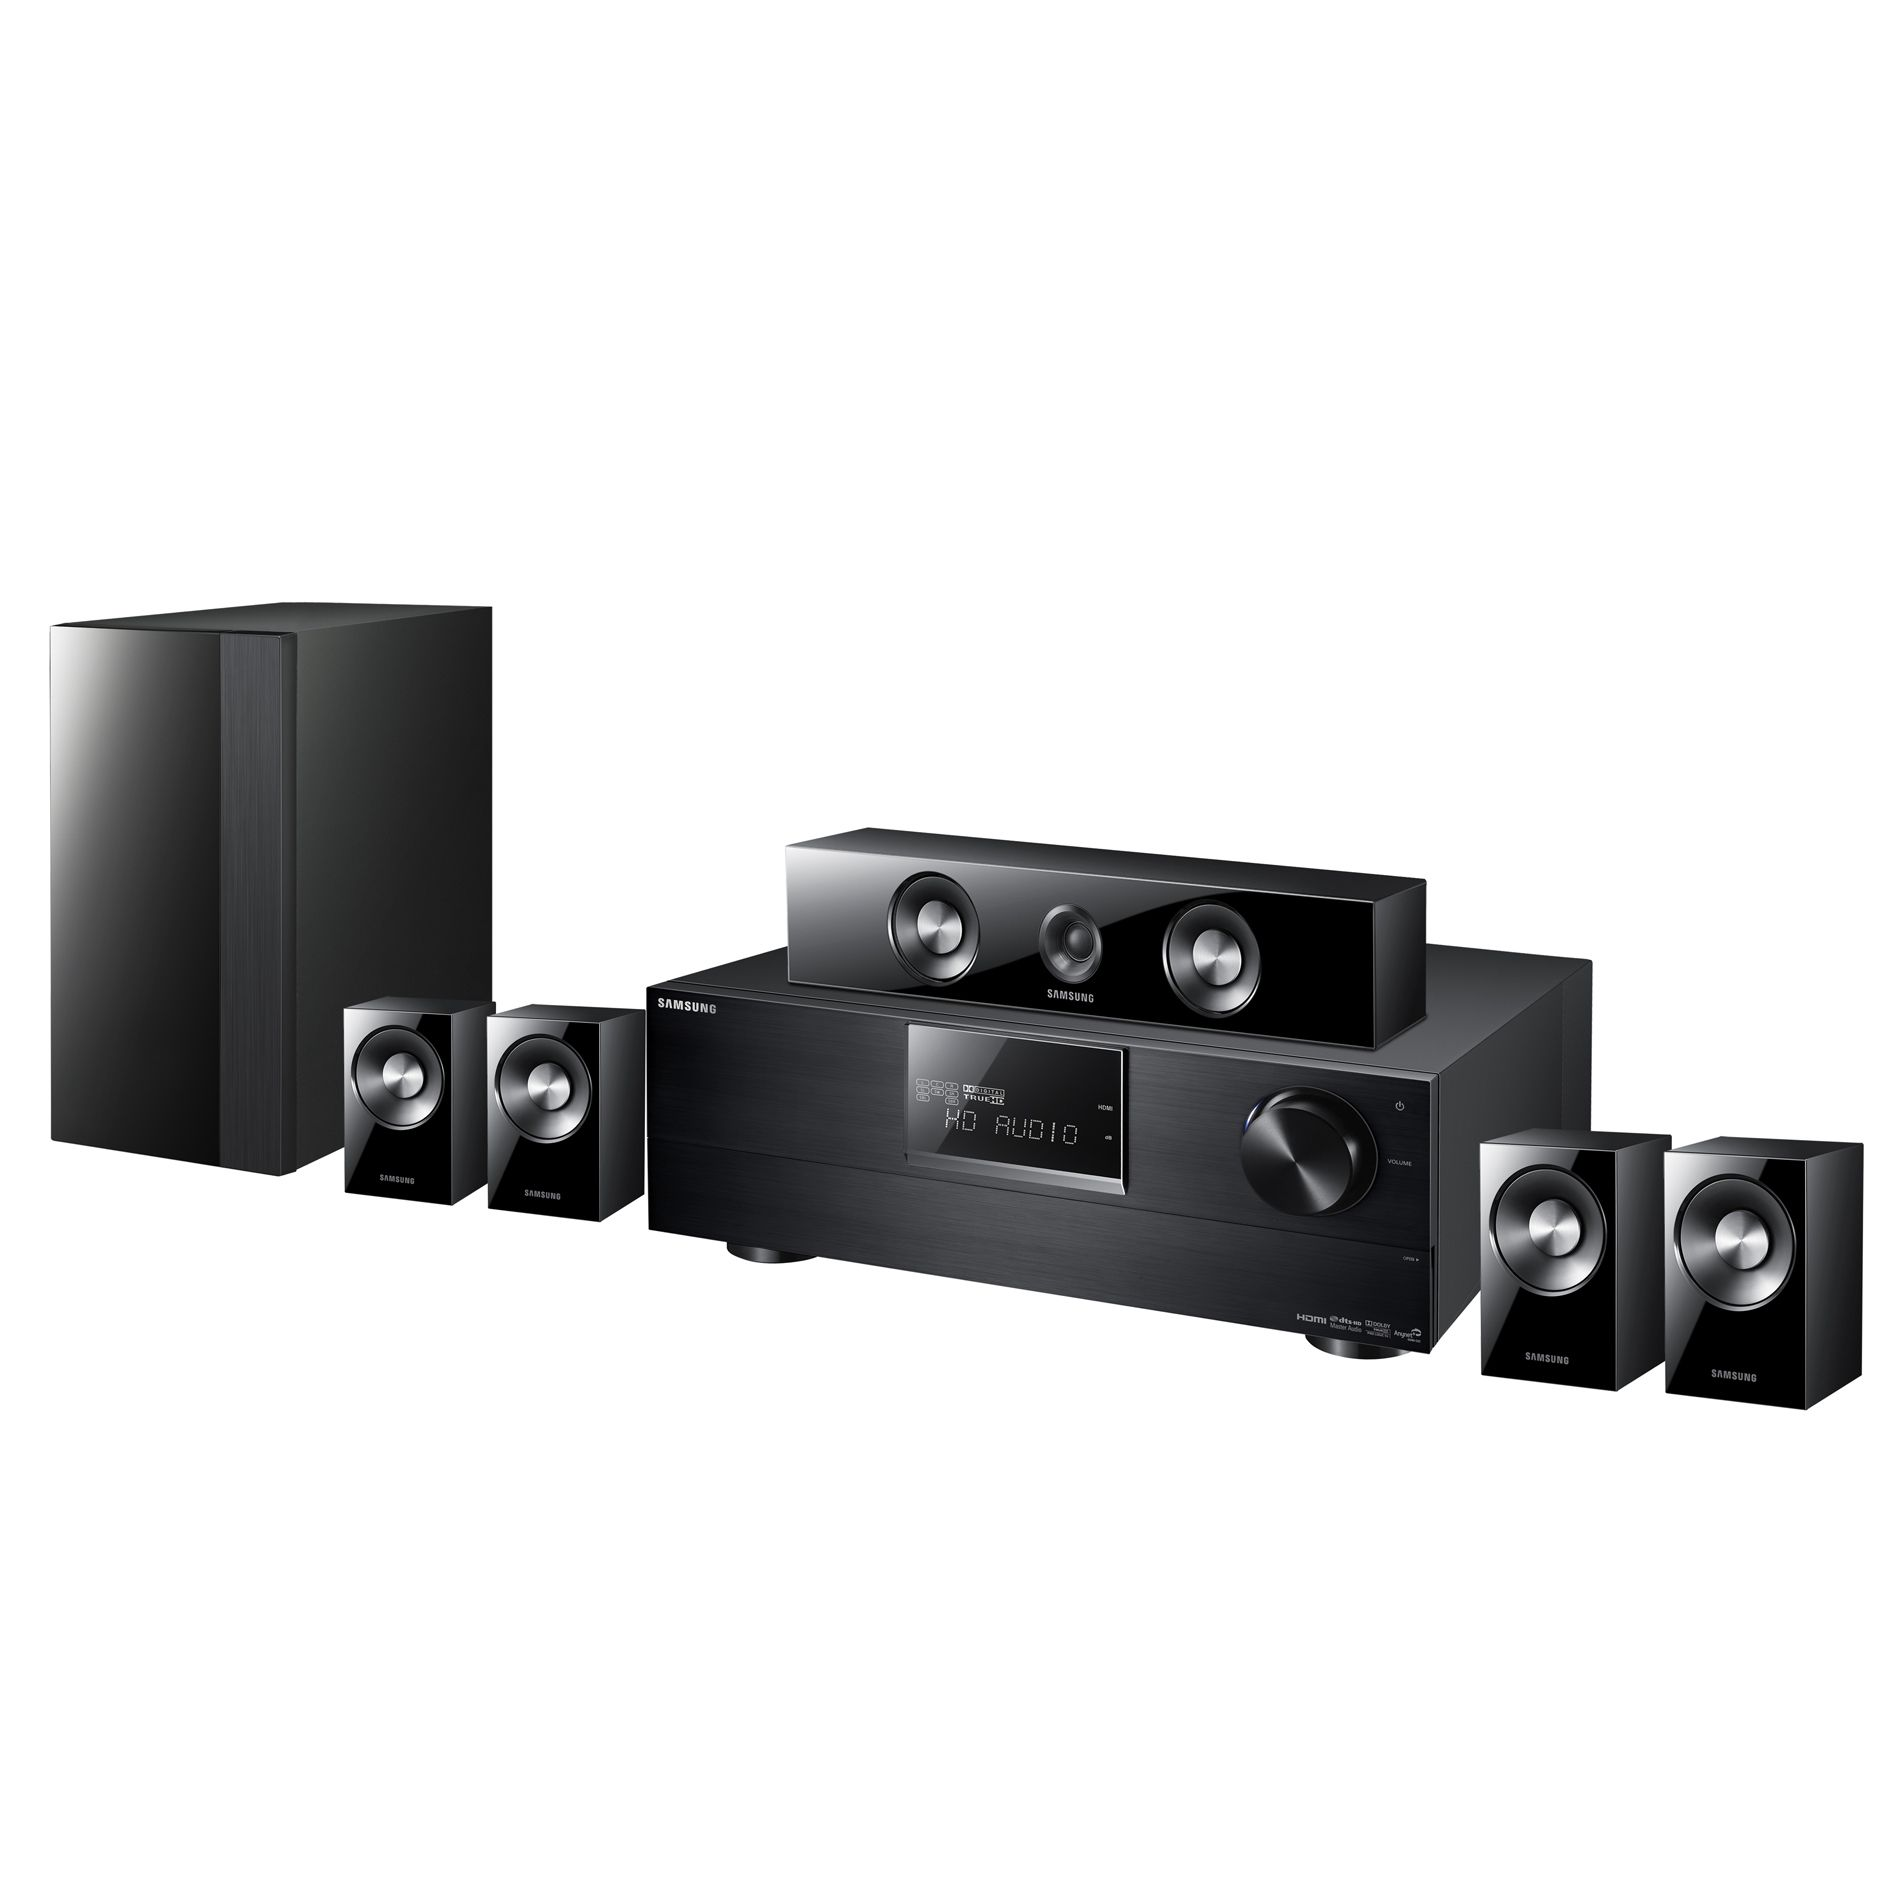 Samsung Receiver-Based 5.1 Channel Home Theater System